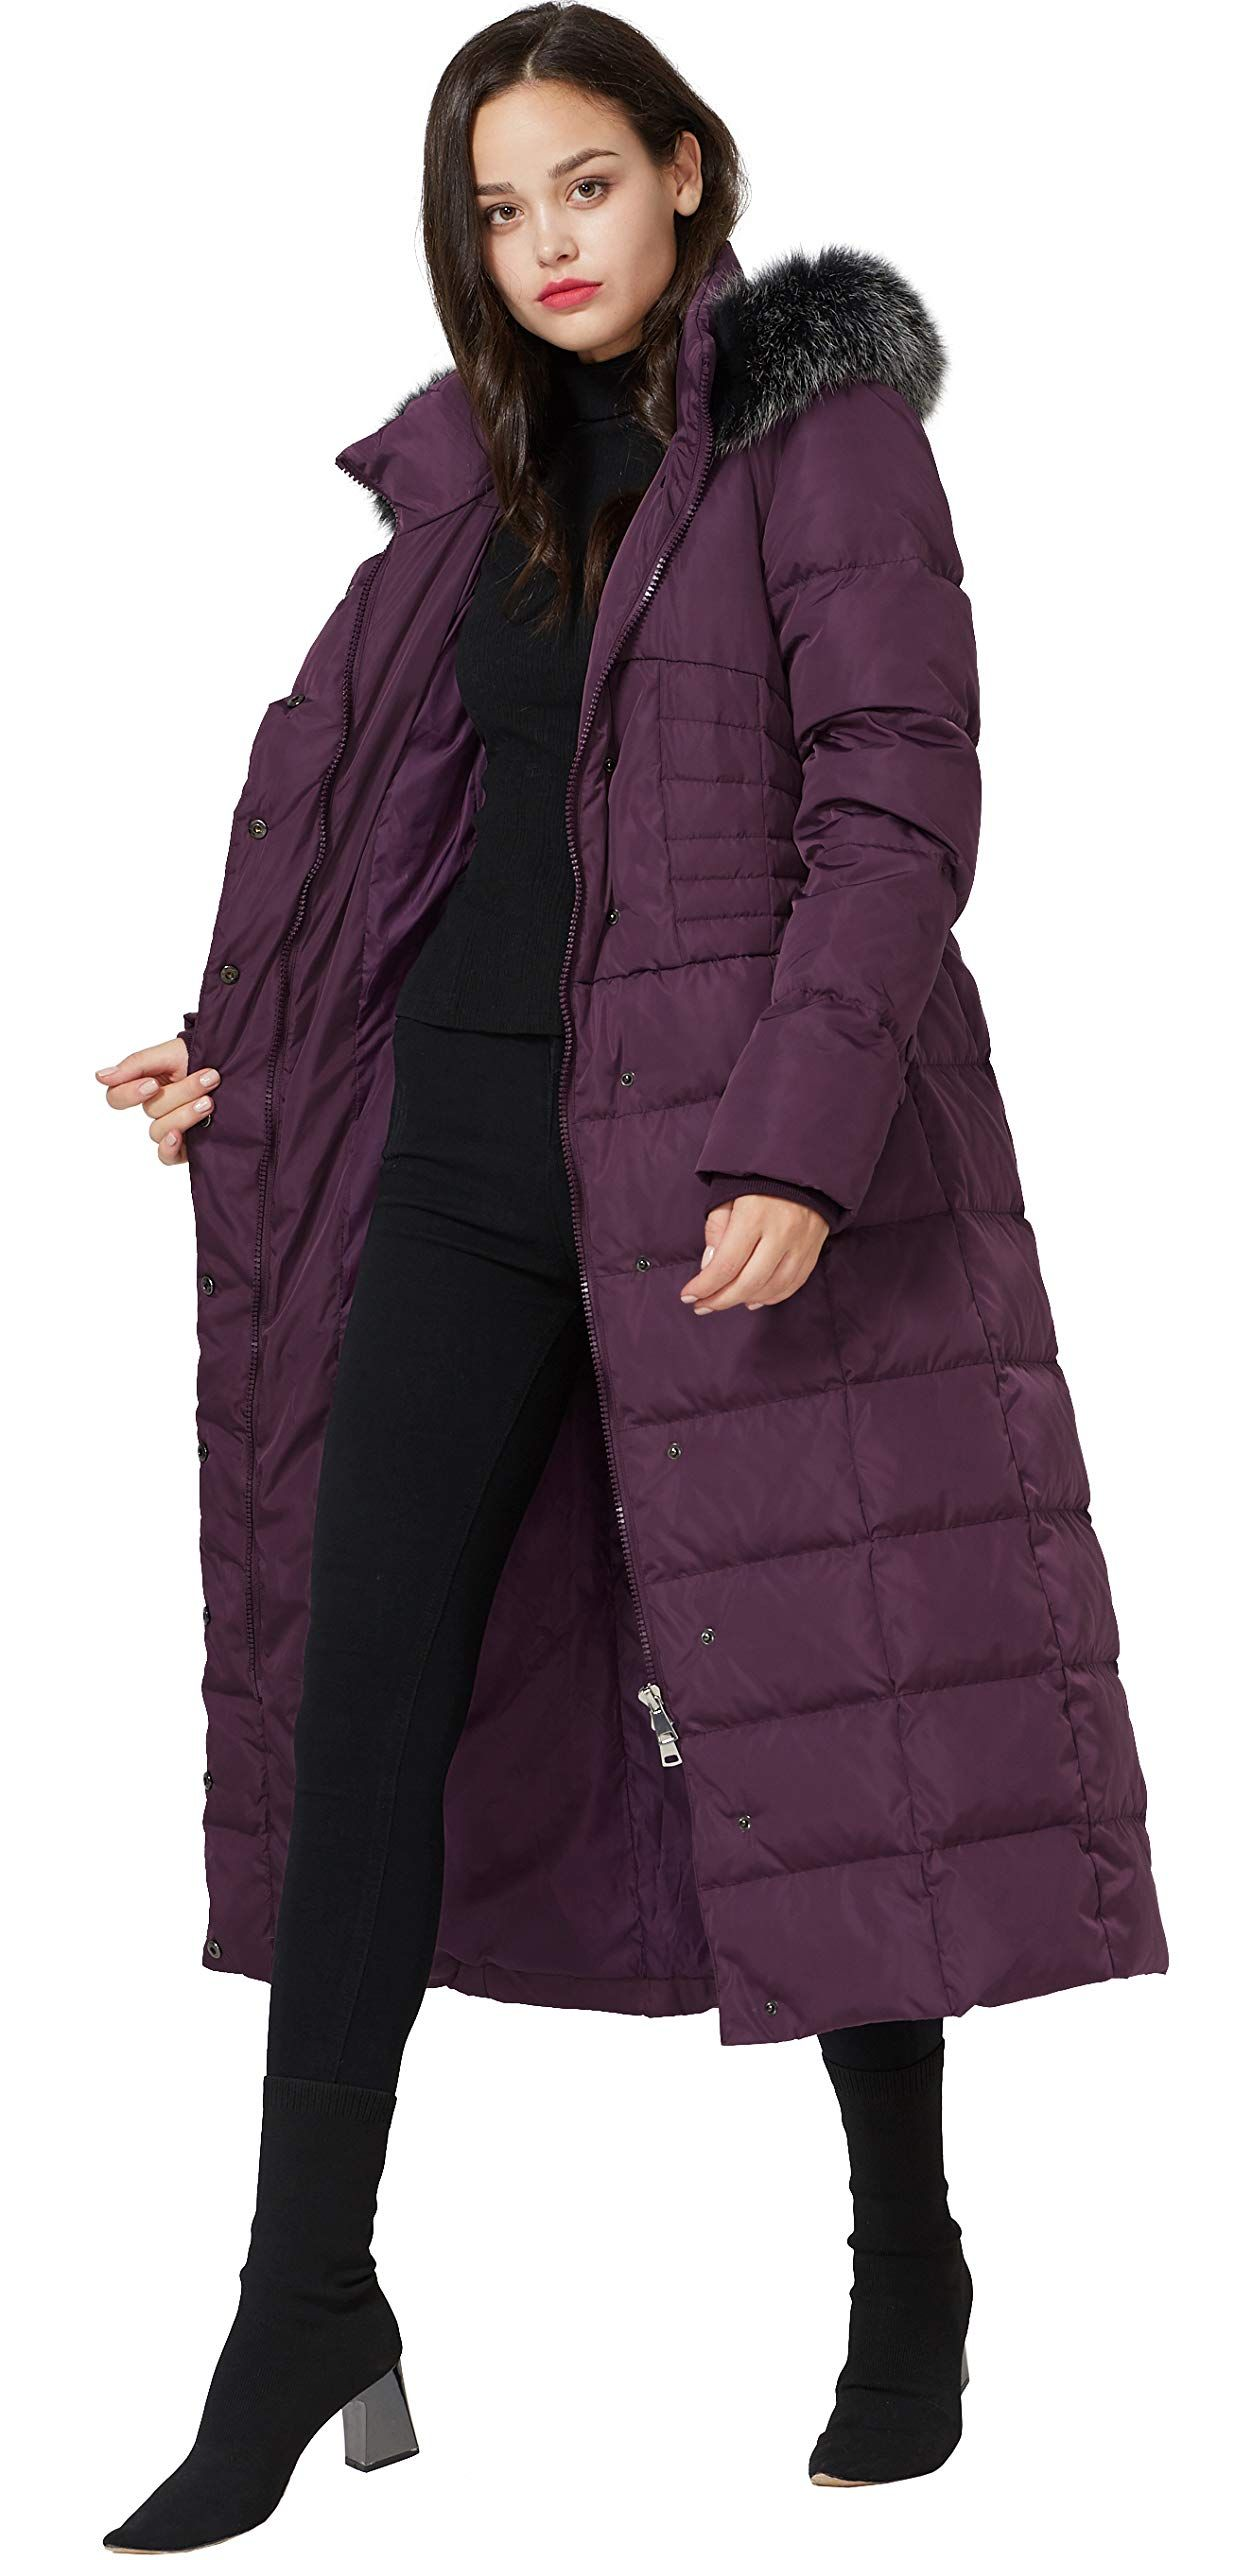 00bbe2569eb Fashion Bug Plus Size Women s Long Down Coat with Fur Hood Maxi Down Parka Puffer  Jacket X-Large www.fashionbug.us  fashionbug  plussize  jackets  coats   ...